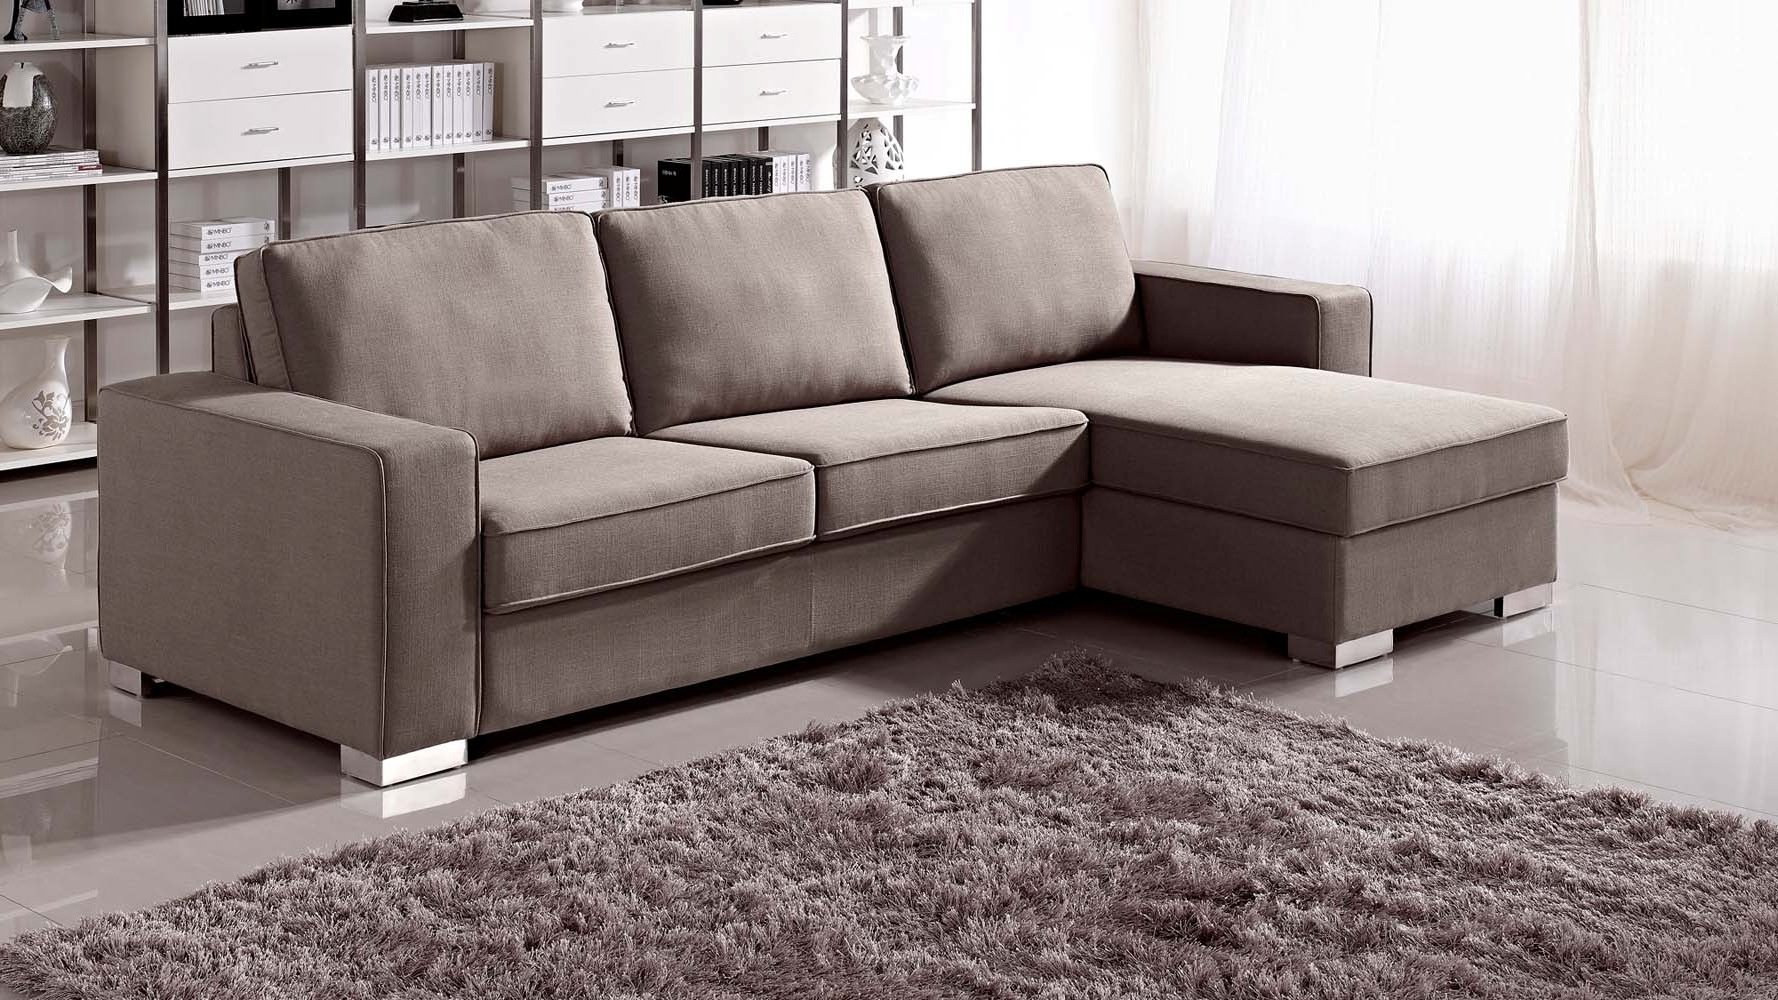 Innovative Sofa Sleeper Sectionals Beautiful Interior Design Style With Regard To 2018 L Shaped Couches With Chaise (View 3 of 15)